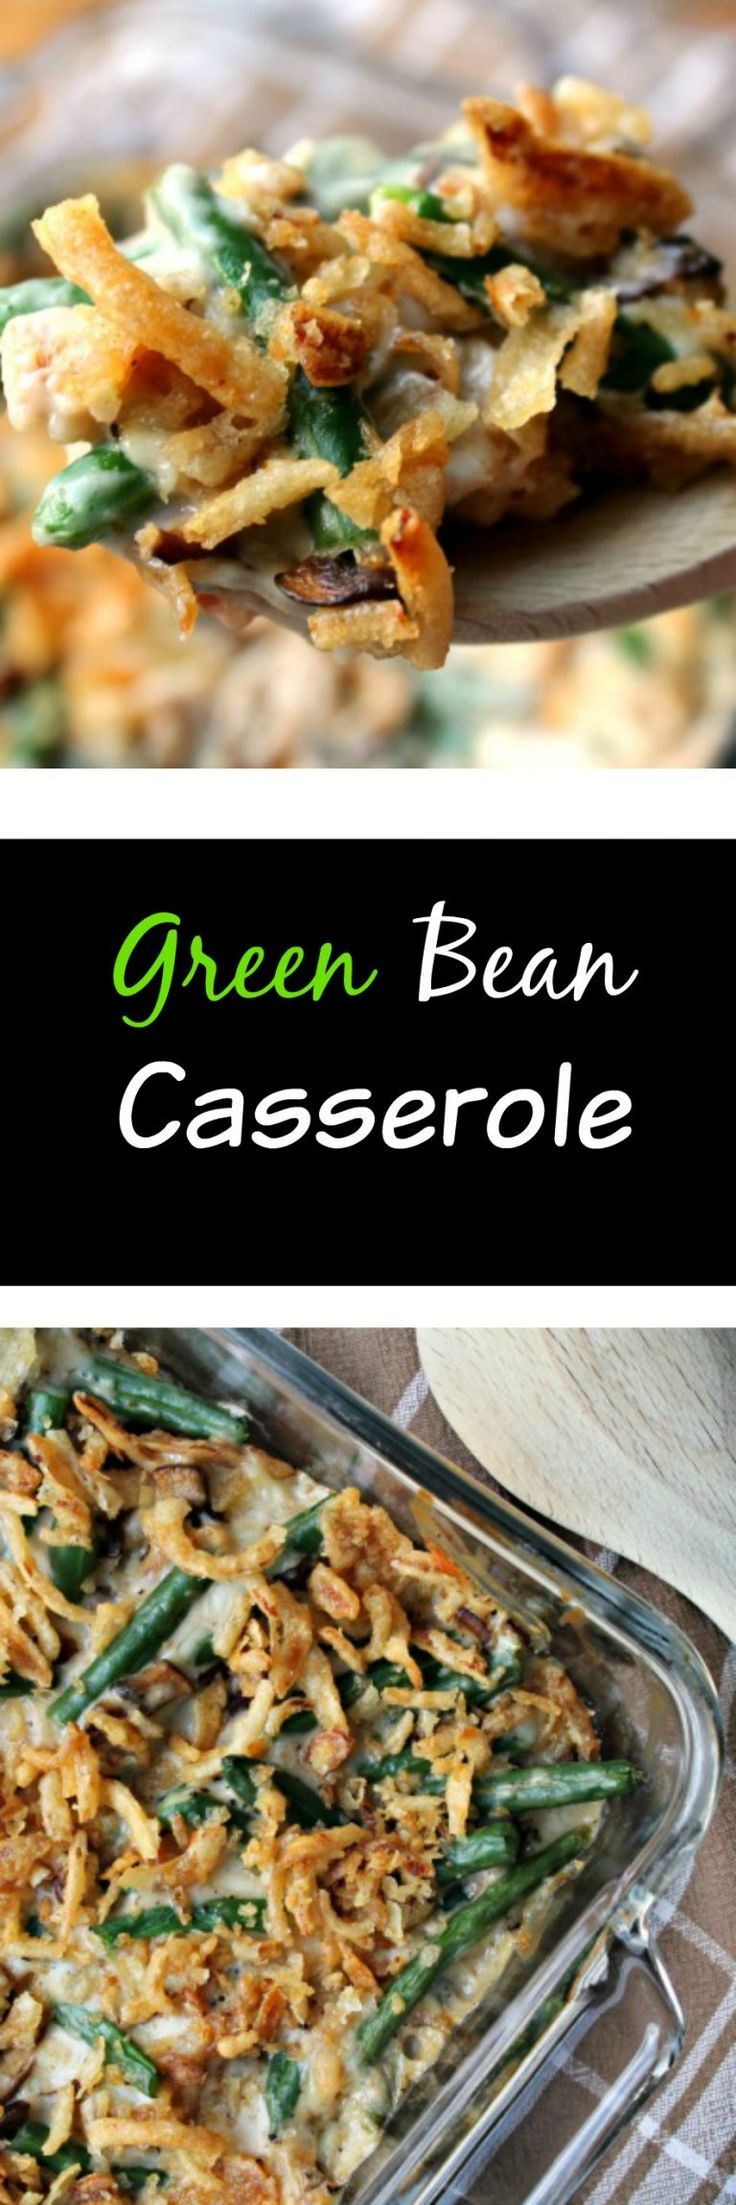 This GREEN BEAN CASSEROLE is not only a Thanksgiving favorite but also pairs well next to roast chicken, pork chops, really anything I can think of. Total comfort food. This one uses fresh green beans and fresh mushrooms! Yum! This could be as good as the real cream and Madeira wine recipe.